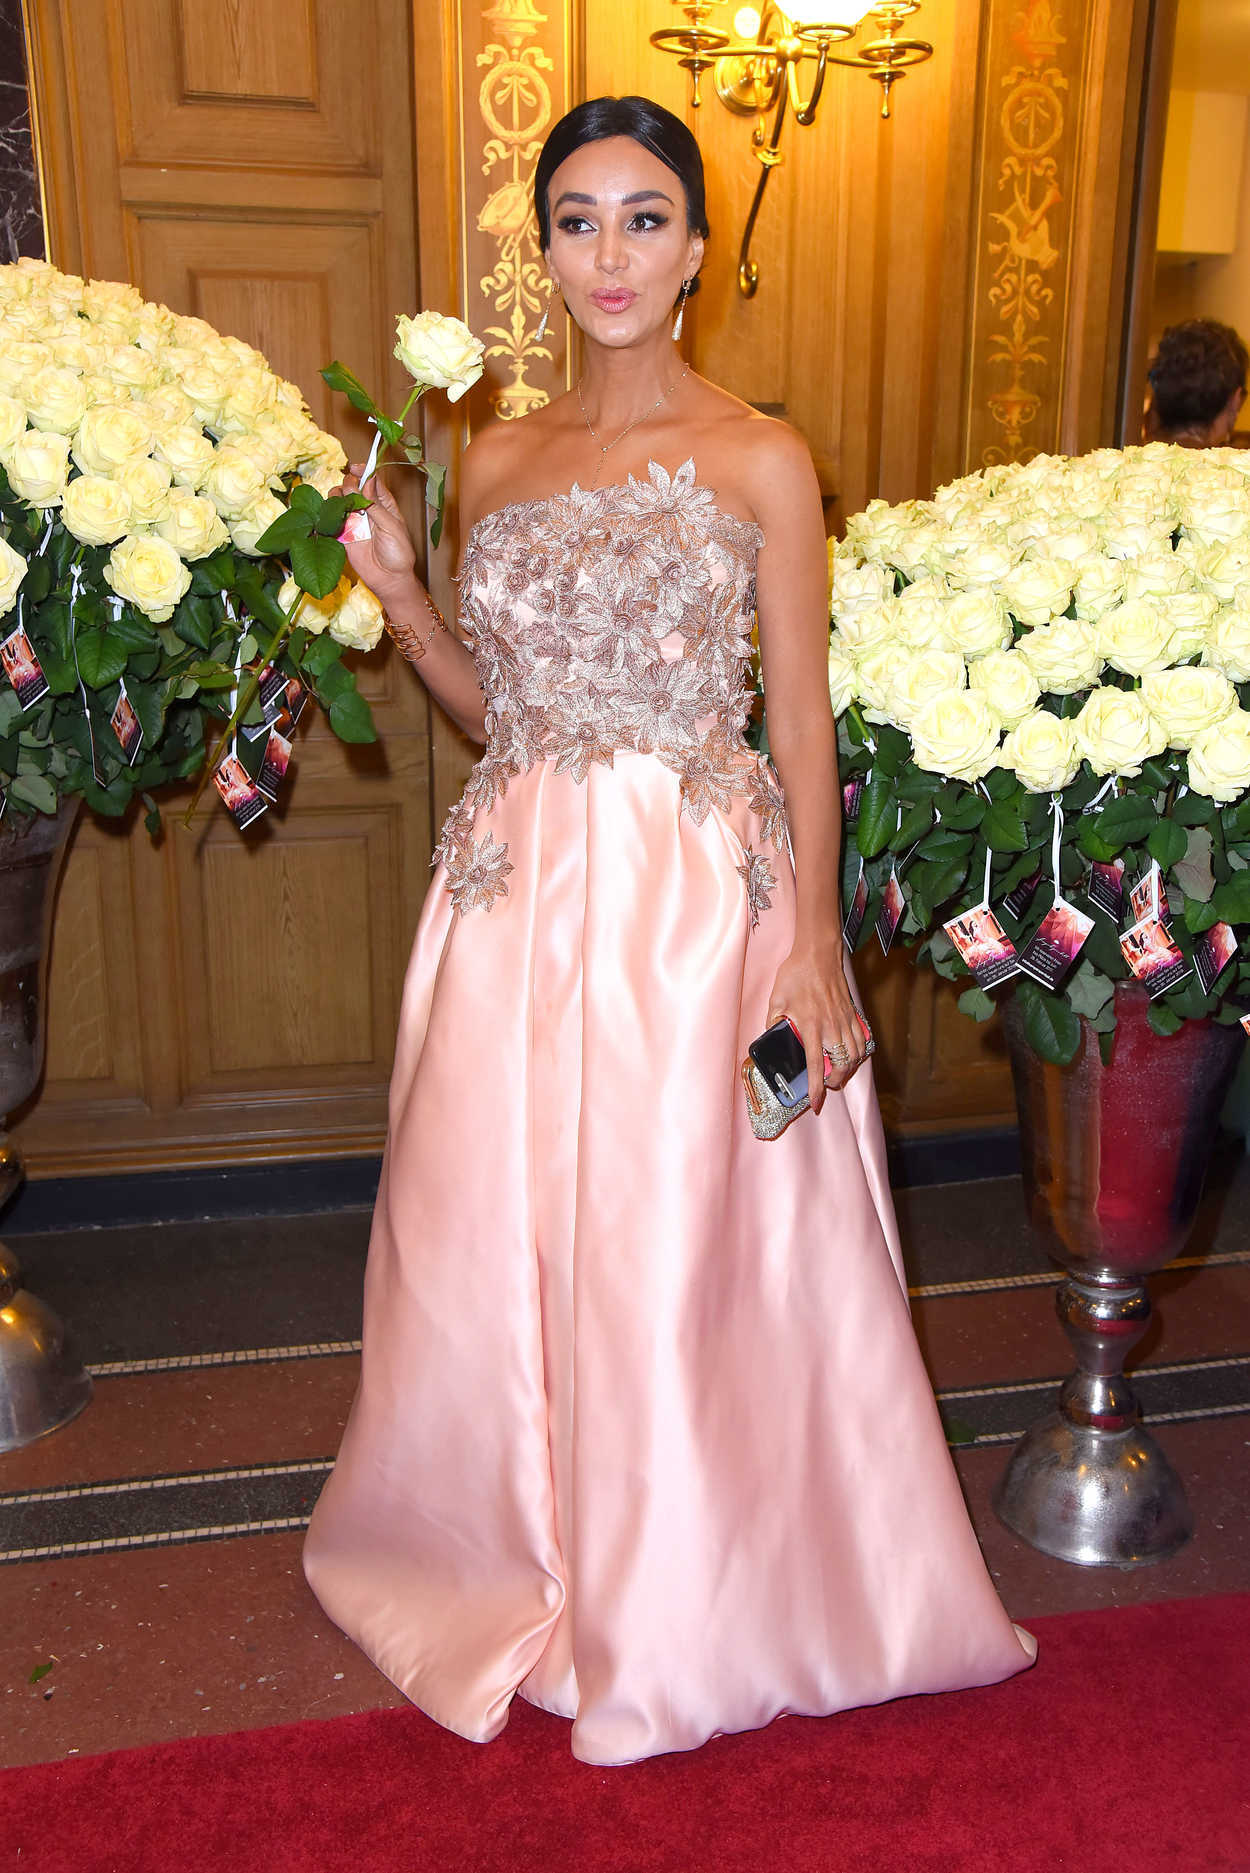 Verona Pooth at the 12th Annual Sempe Opernball in Dresden